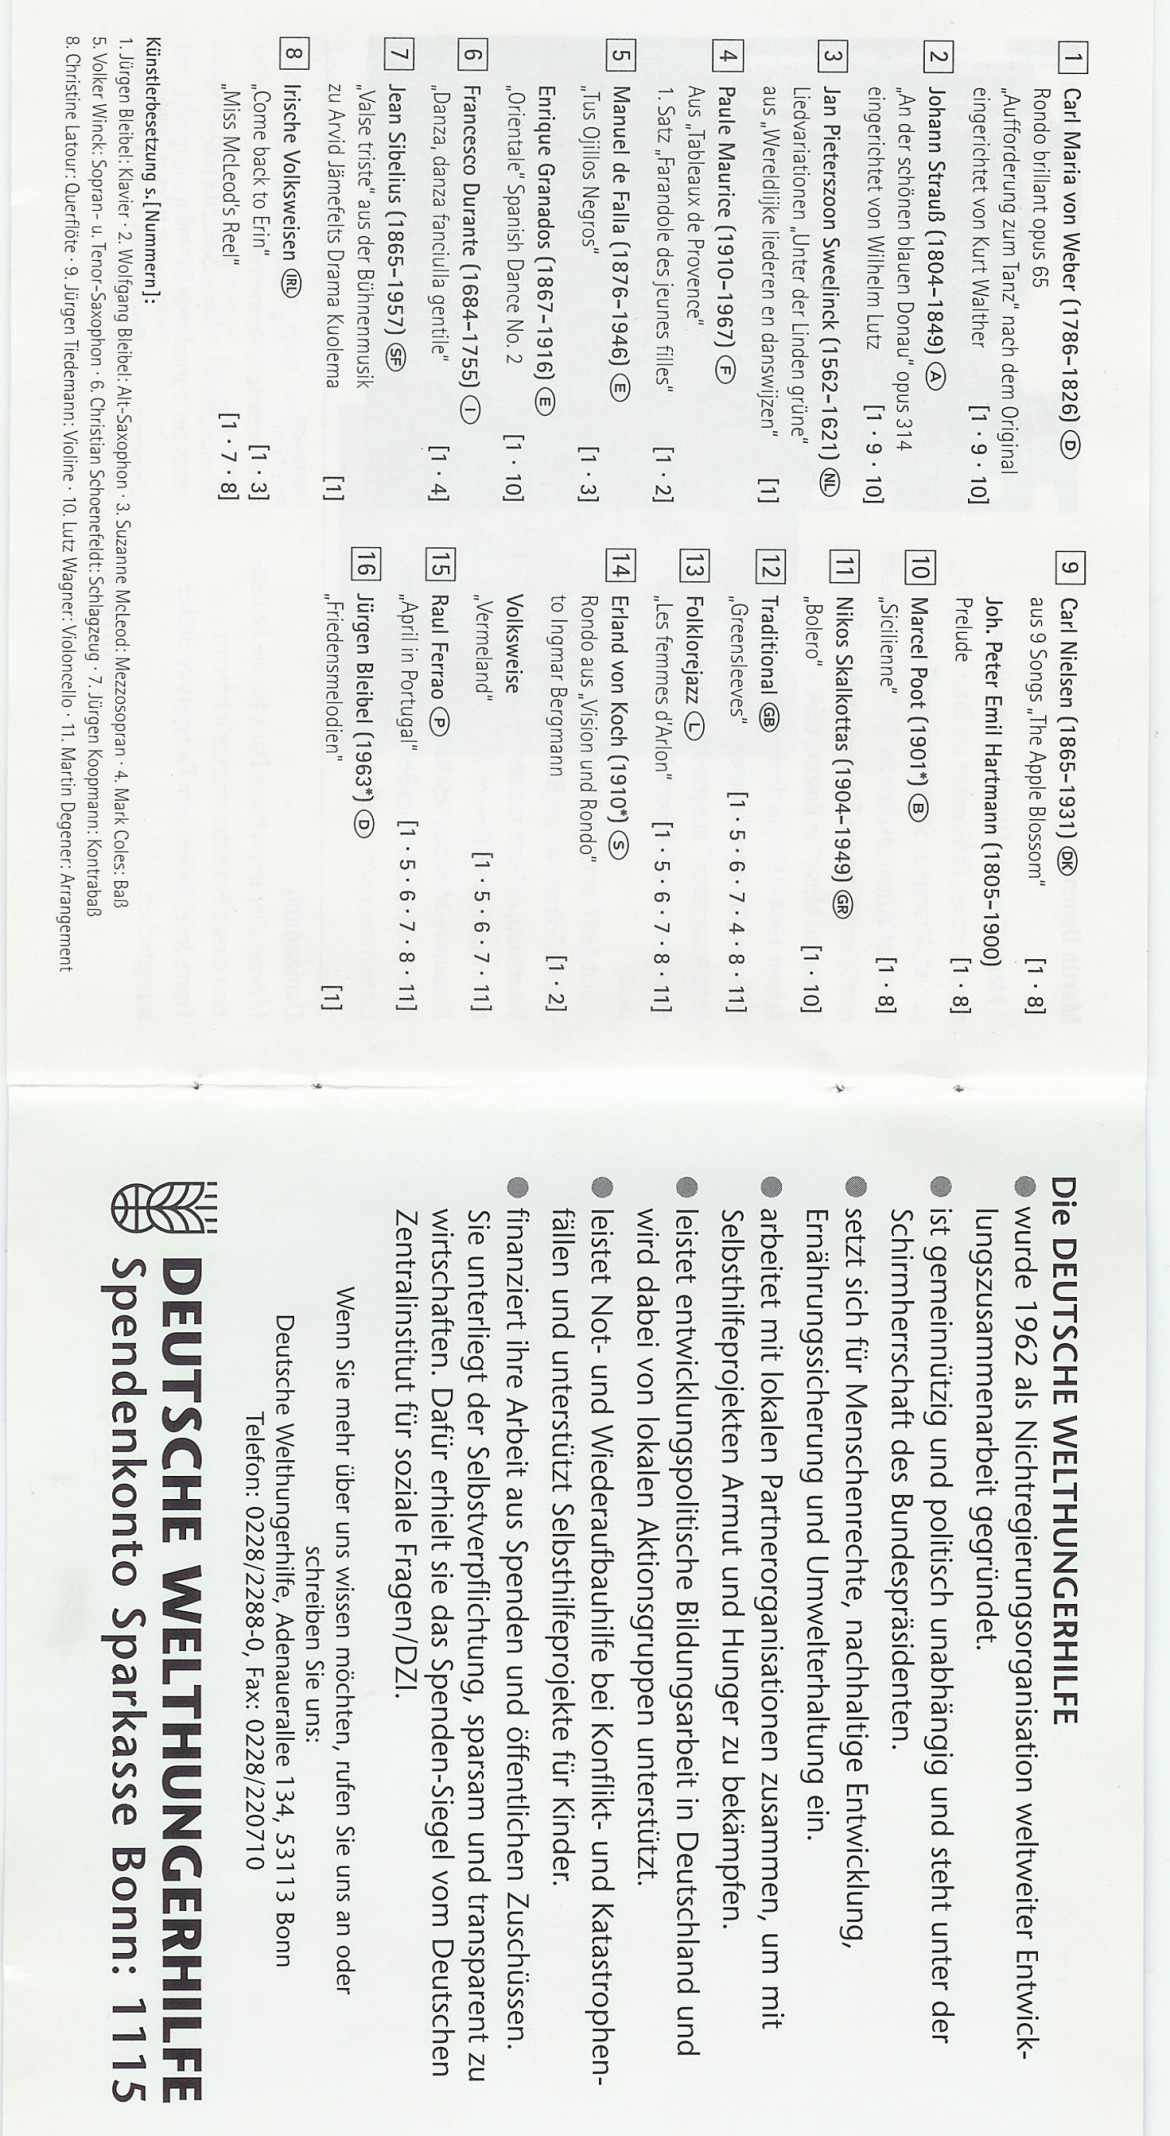 Europa tanzt Booklet 3